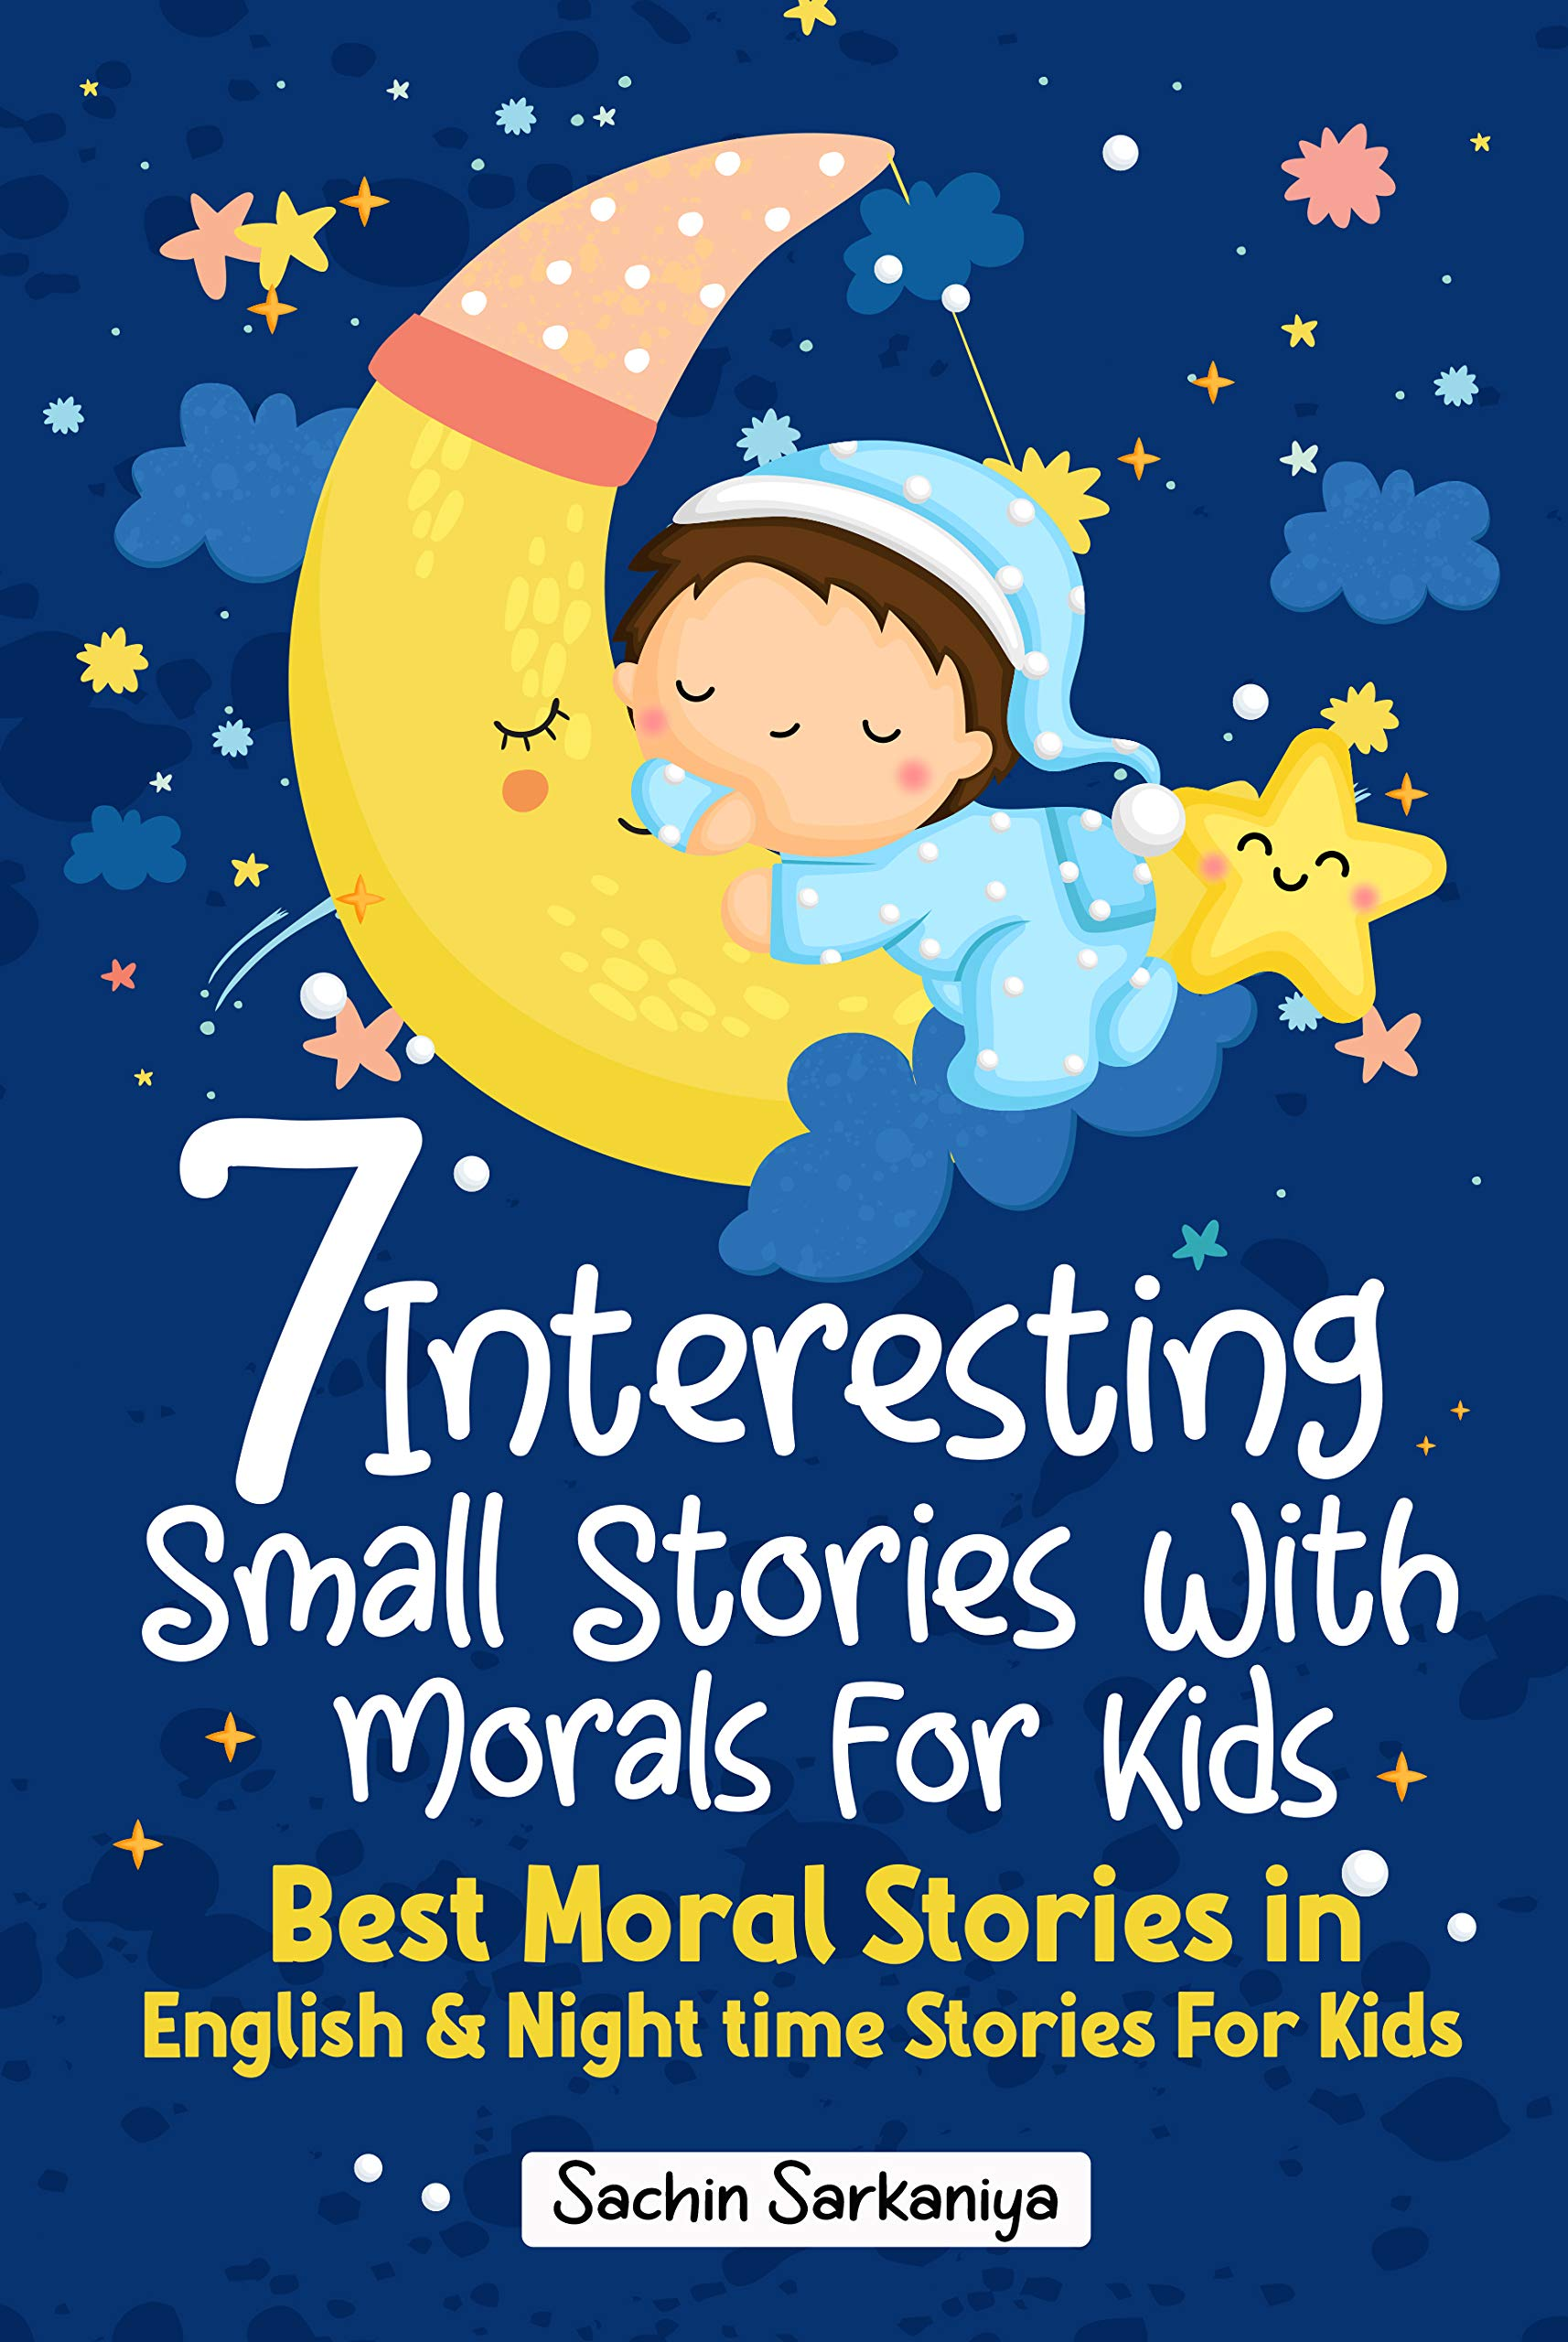 7 Interesting Small Stories With Morals For Kids: Best Moral Stories in English & Nighttime Stories For Kids (Chapter Books Under 5 Dollars Book 1)